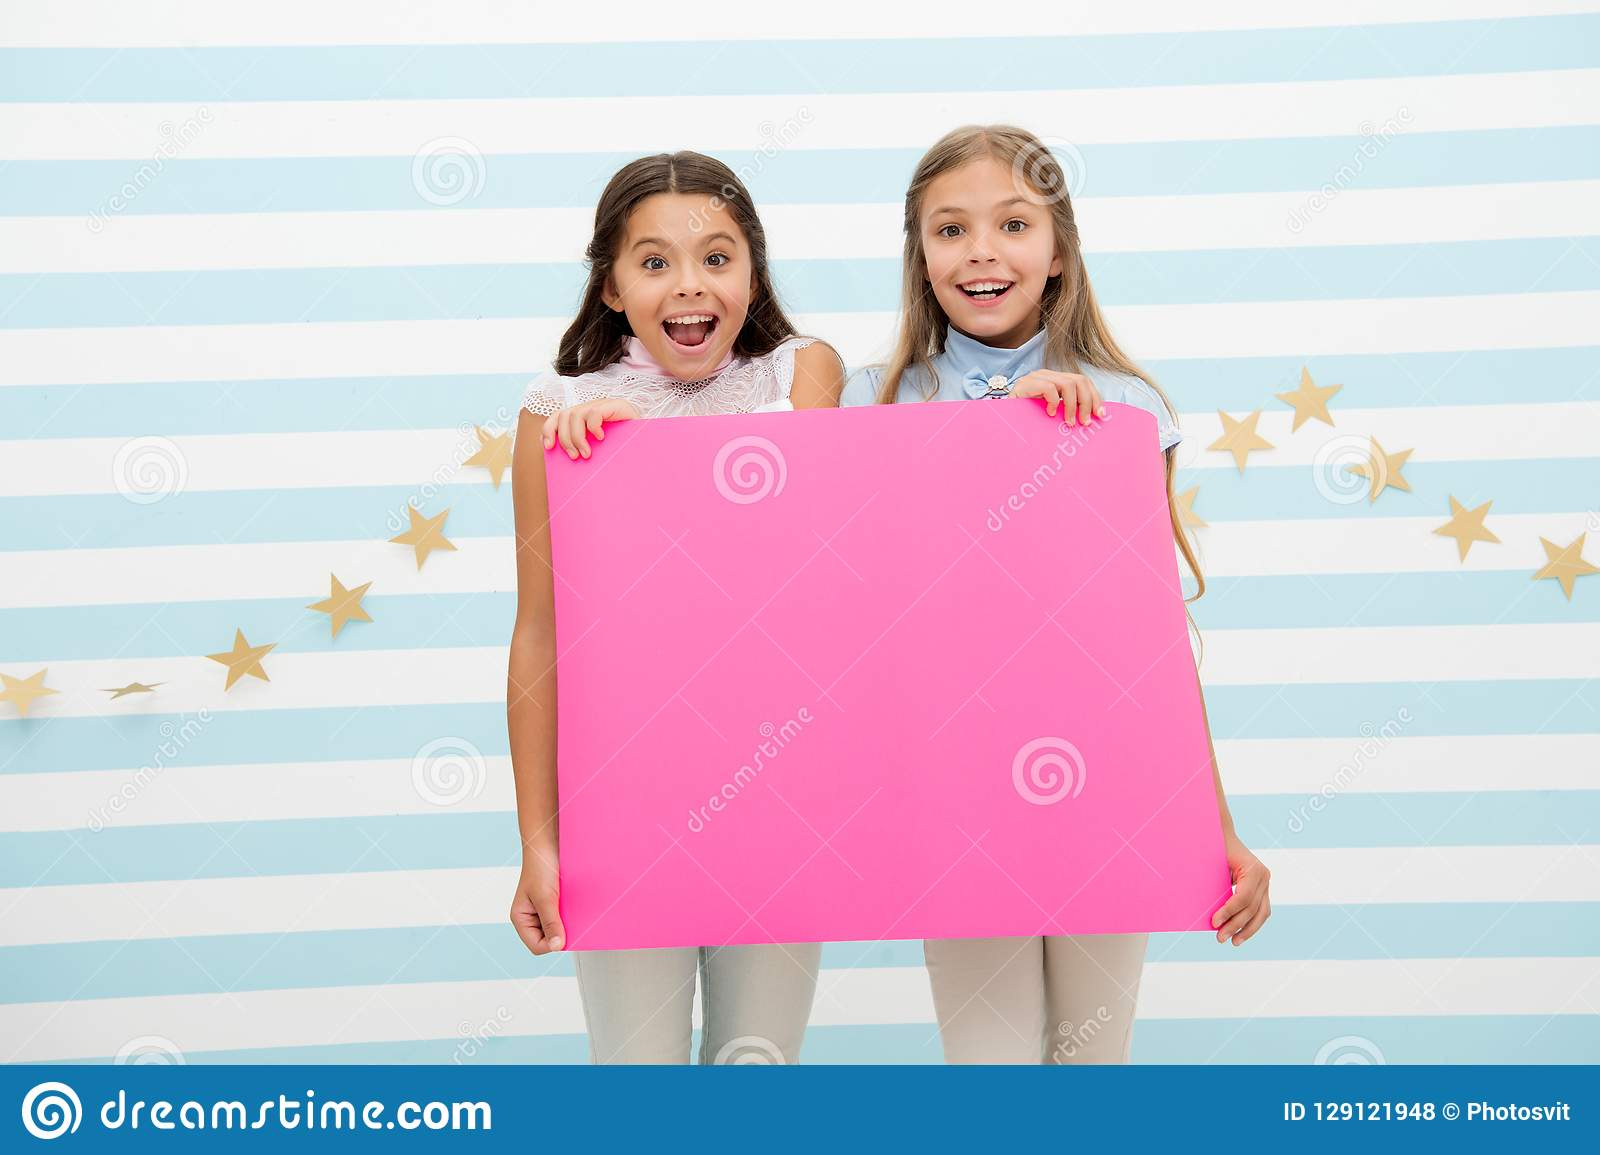 The Surprising News About Childrens >> Amazing Surprising News Girl Hold Announcement Banner Girls Kids